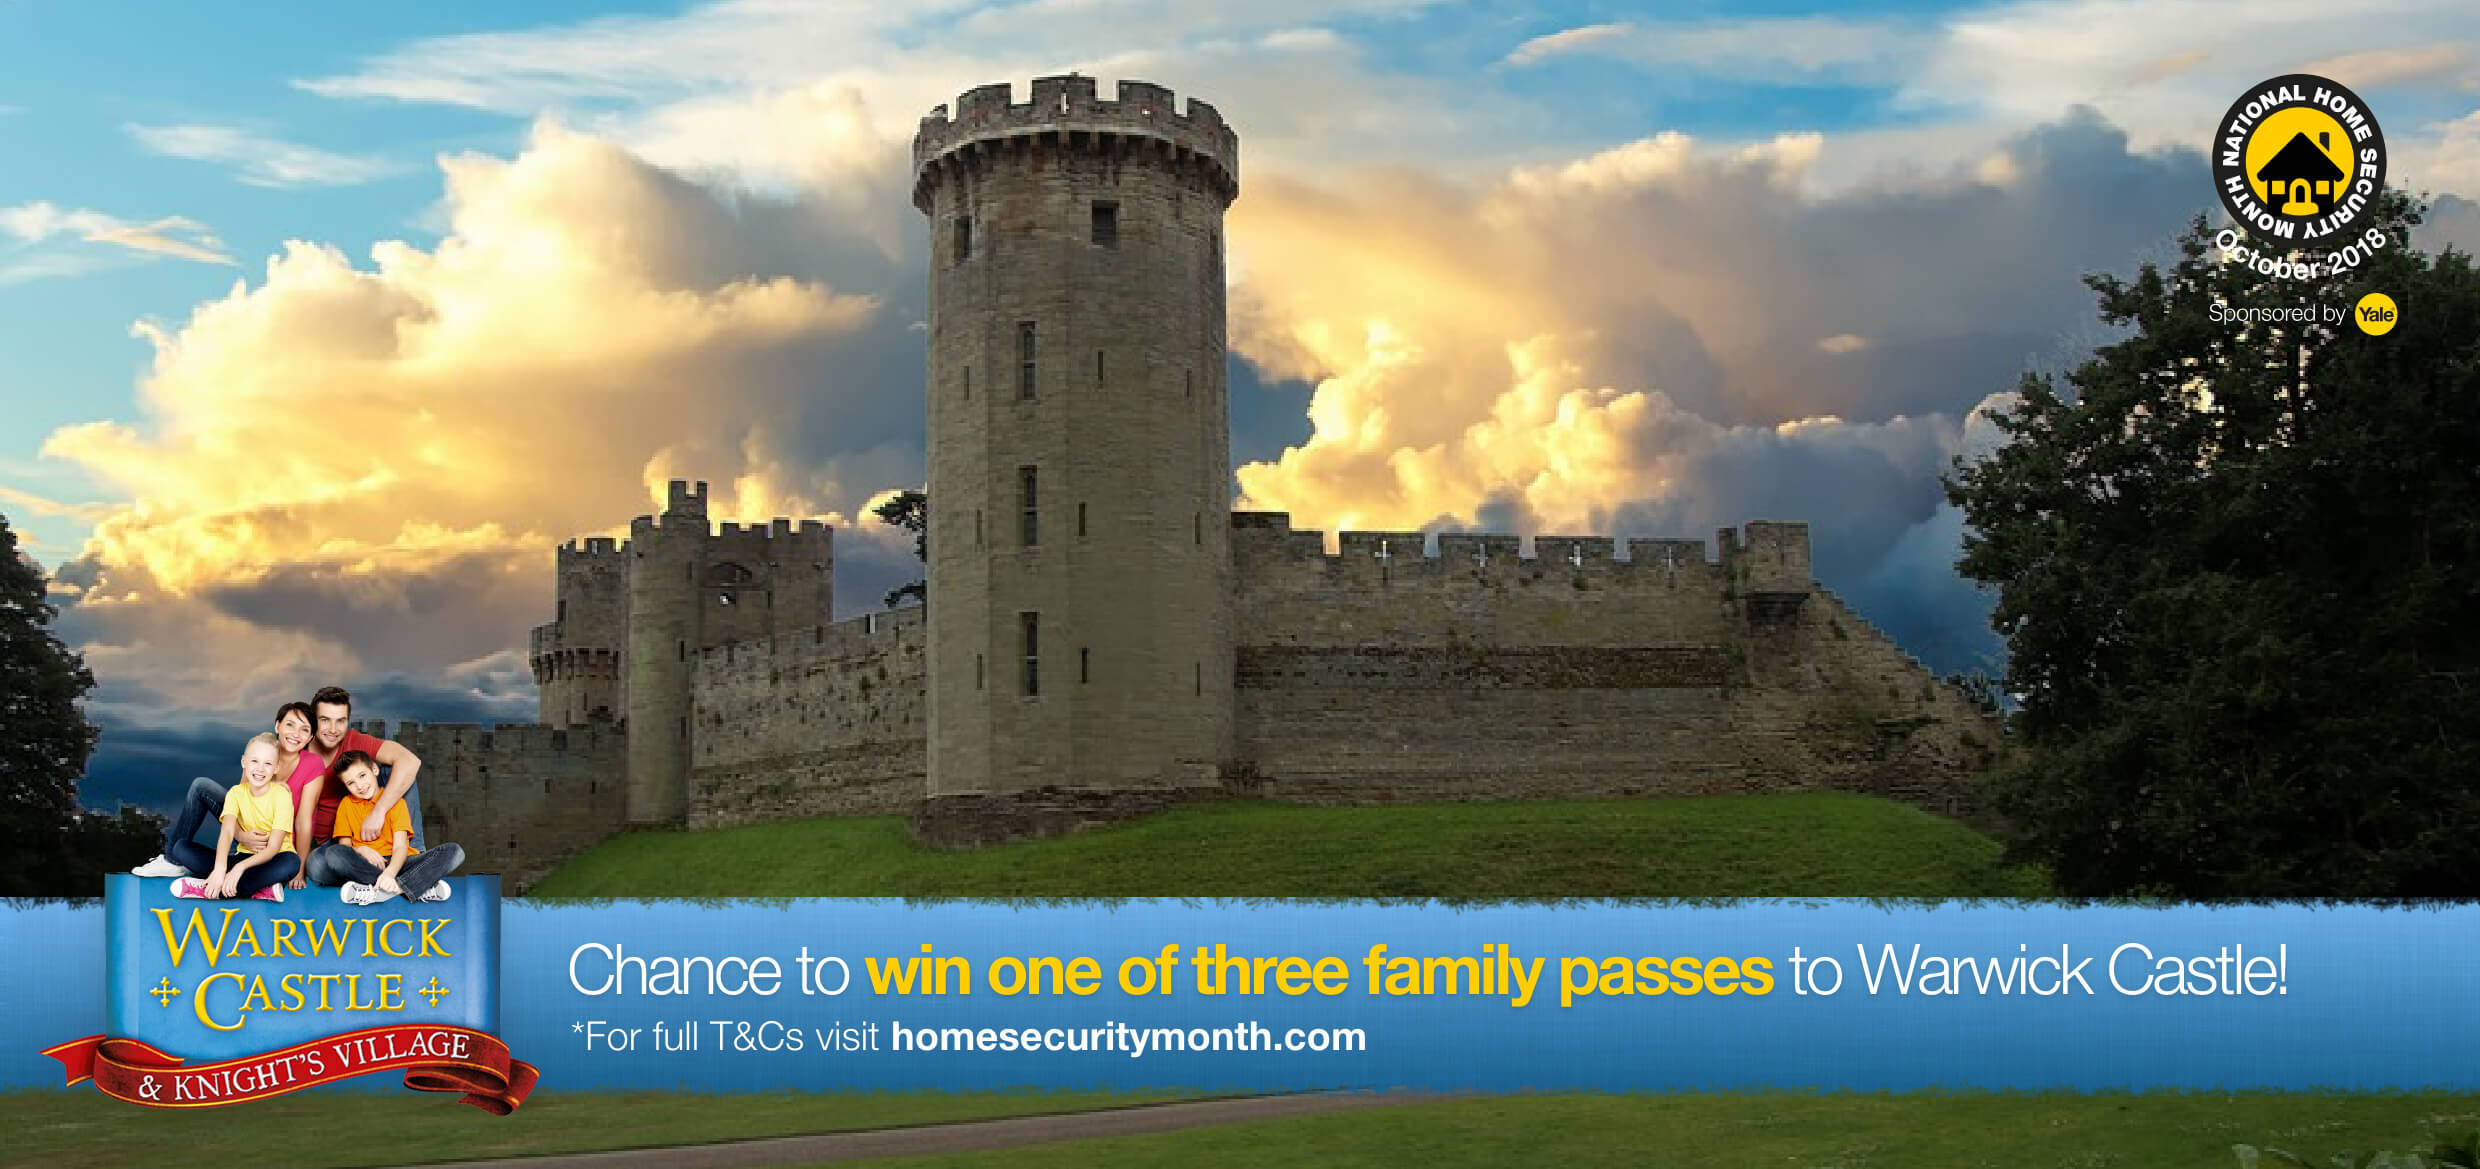 Chance to win! Tickets to Warwick Castle